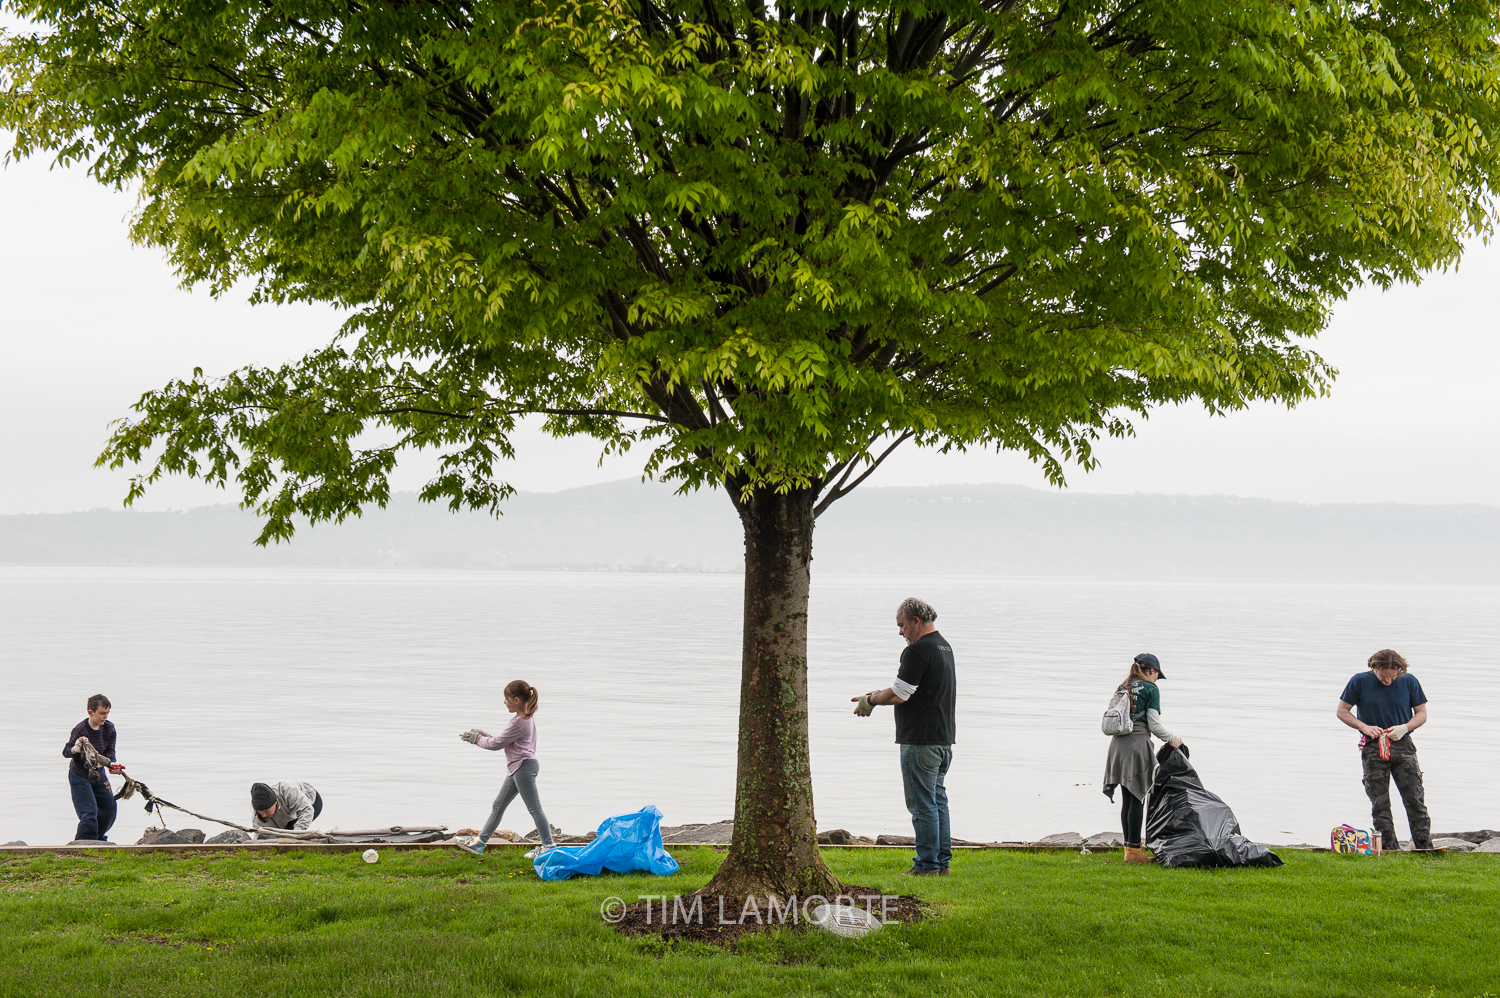 Cameron Brown, Melissa Brown, Ashley Clement, Anthony Grillo, Heather Siani, and Clay Clement at Scenic Hudson Park in Irvington, N.Y.